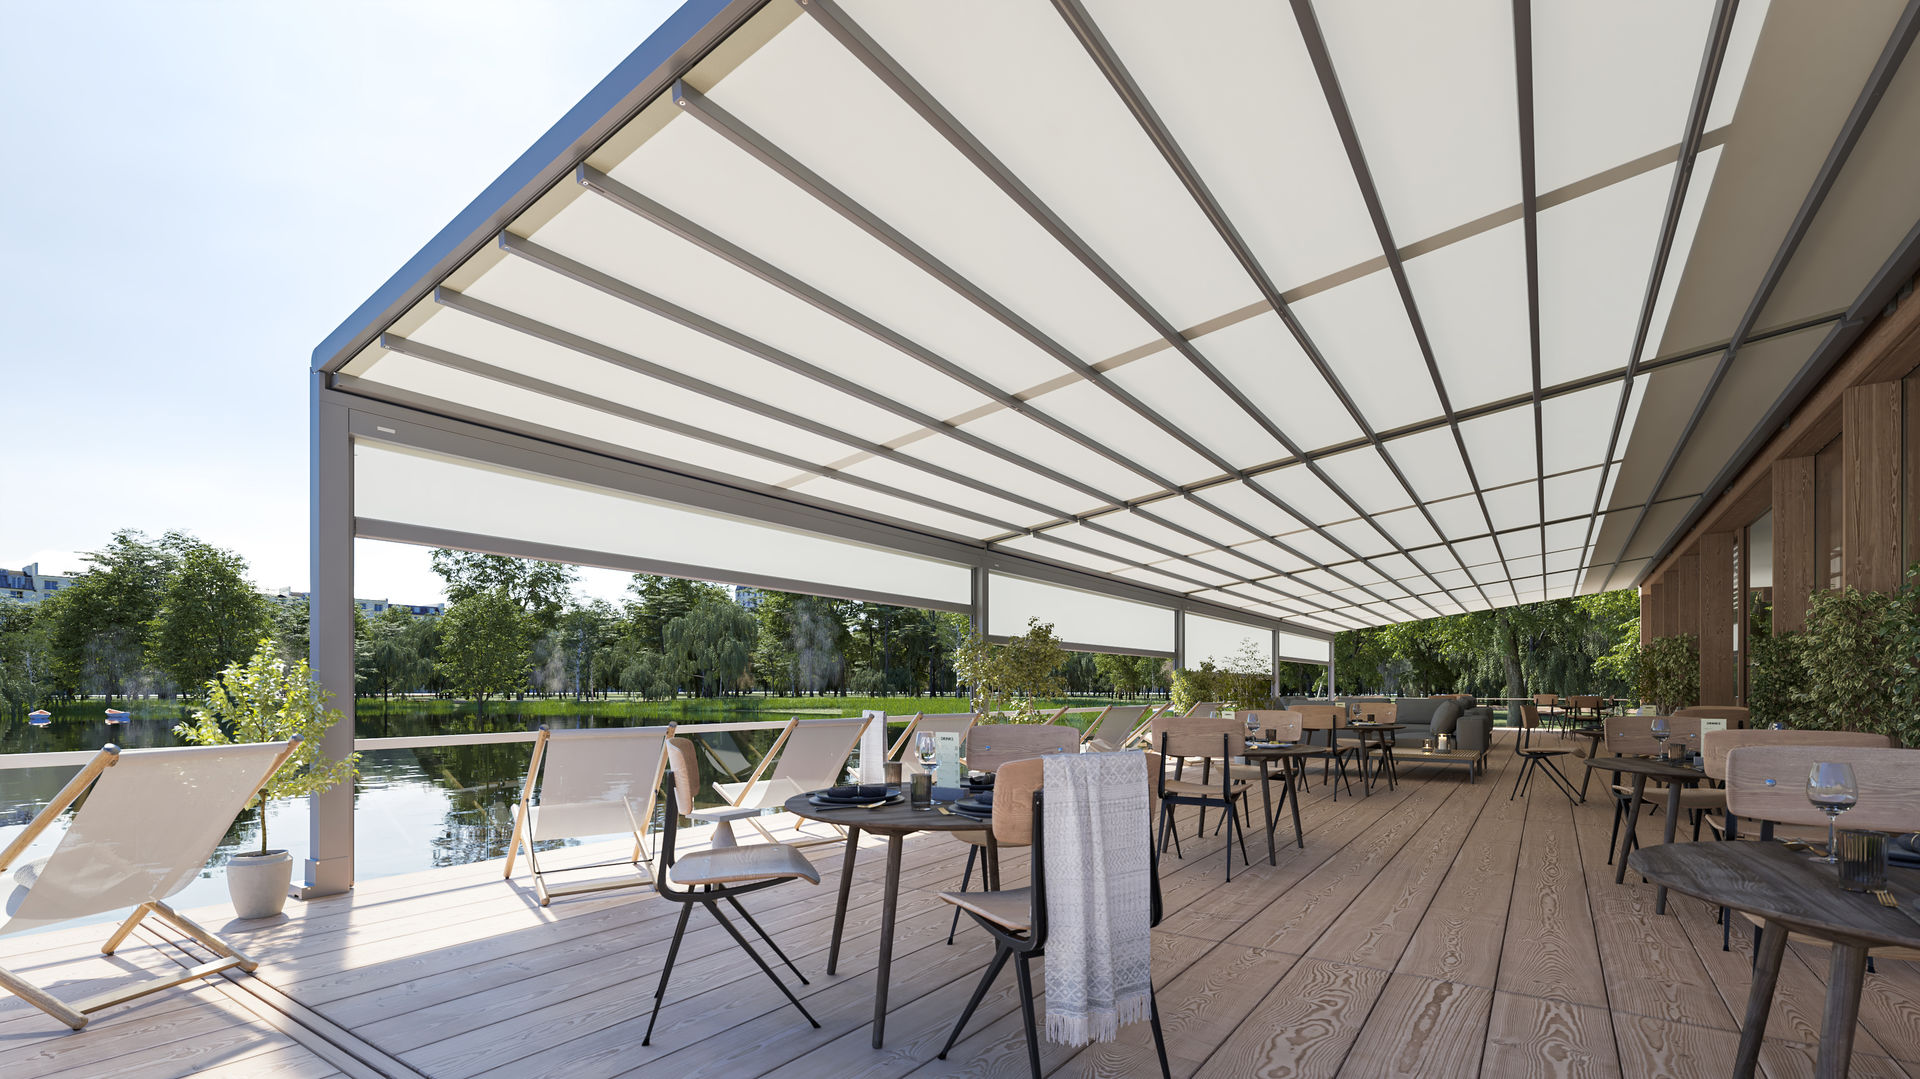 <p>Markilux Awnings Solar Protection Pergola Stretch Restaurant Extended</p> <p></p> <p>Restaurant Terrace Covered Hospitality Area Outdoor Restaurant setting</p> <p></p> <p>Pergola Stretch – Restaurant outdoor terrace setting – keeping your customers protected from all-weathers 365 days of the year</p>